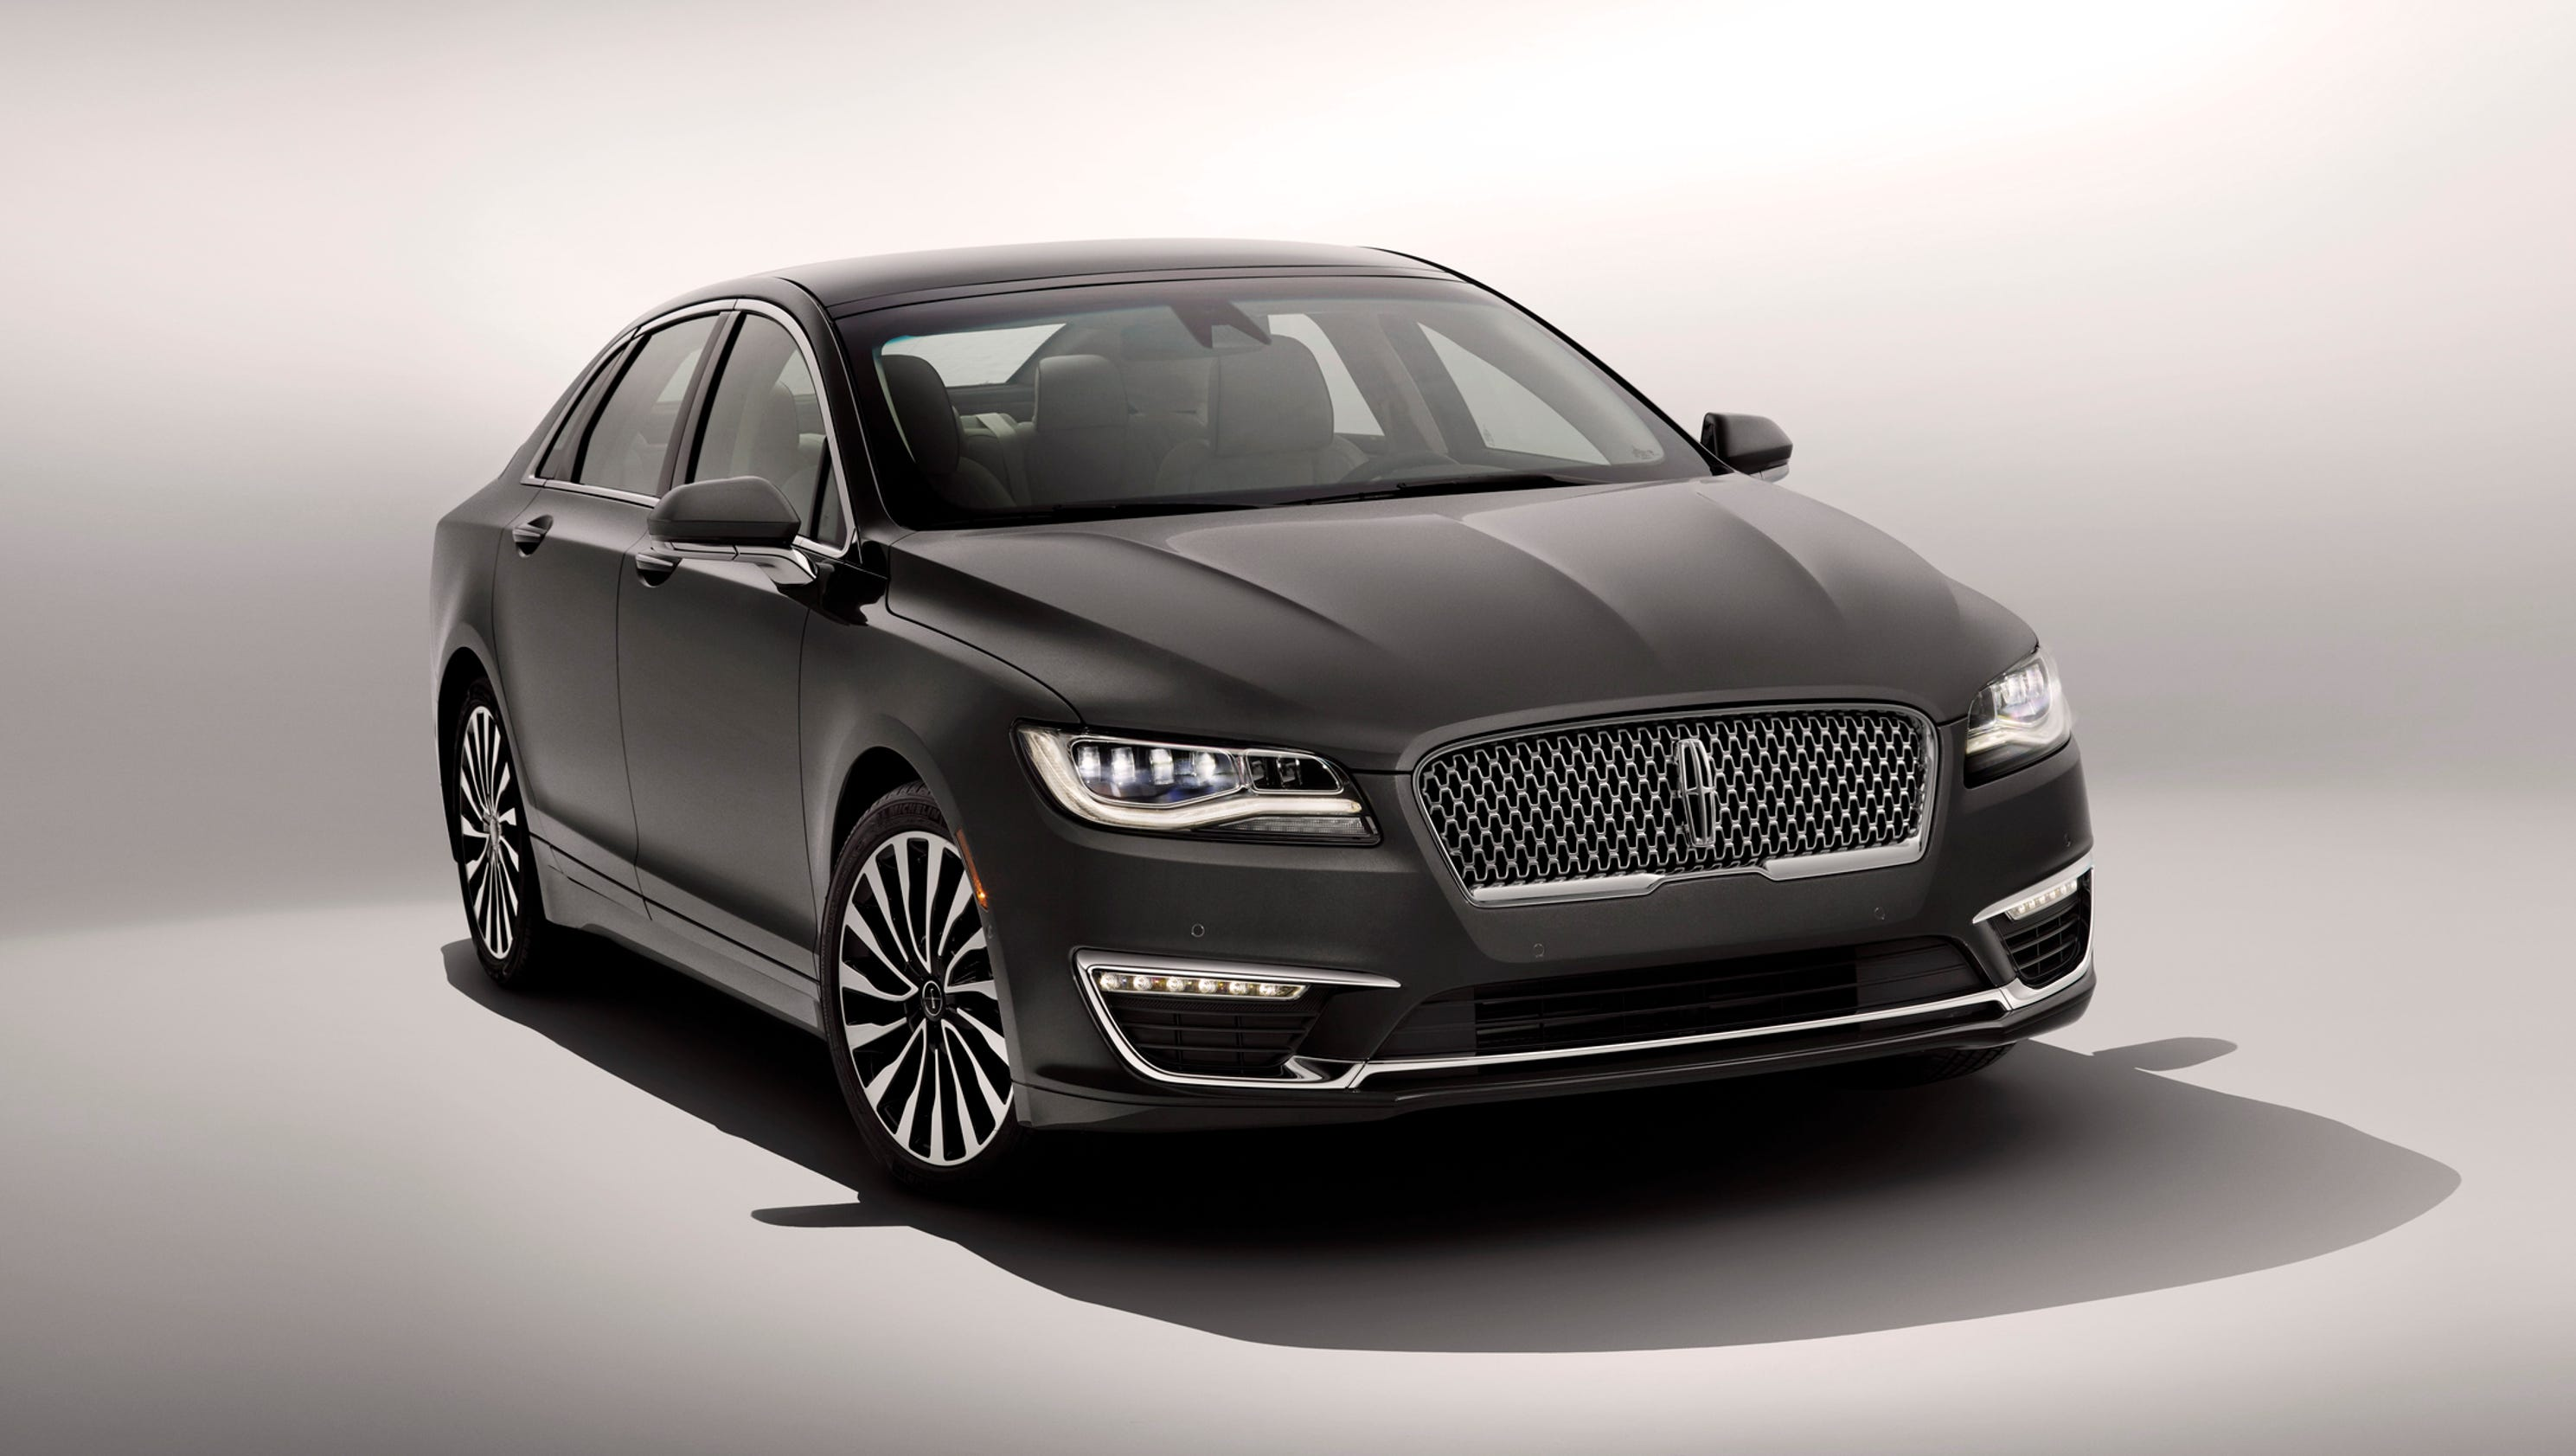 brand trying lincoln is enter label re up now experience to indulgence are launches hr of that with entirely an game introduction in mkz they step review their new motor plan black one blacklabel and the